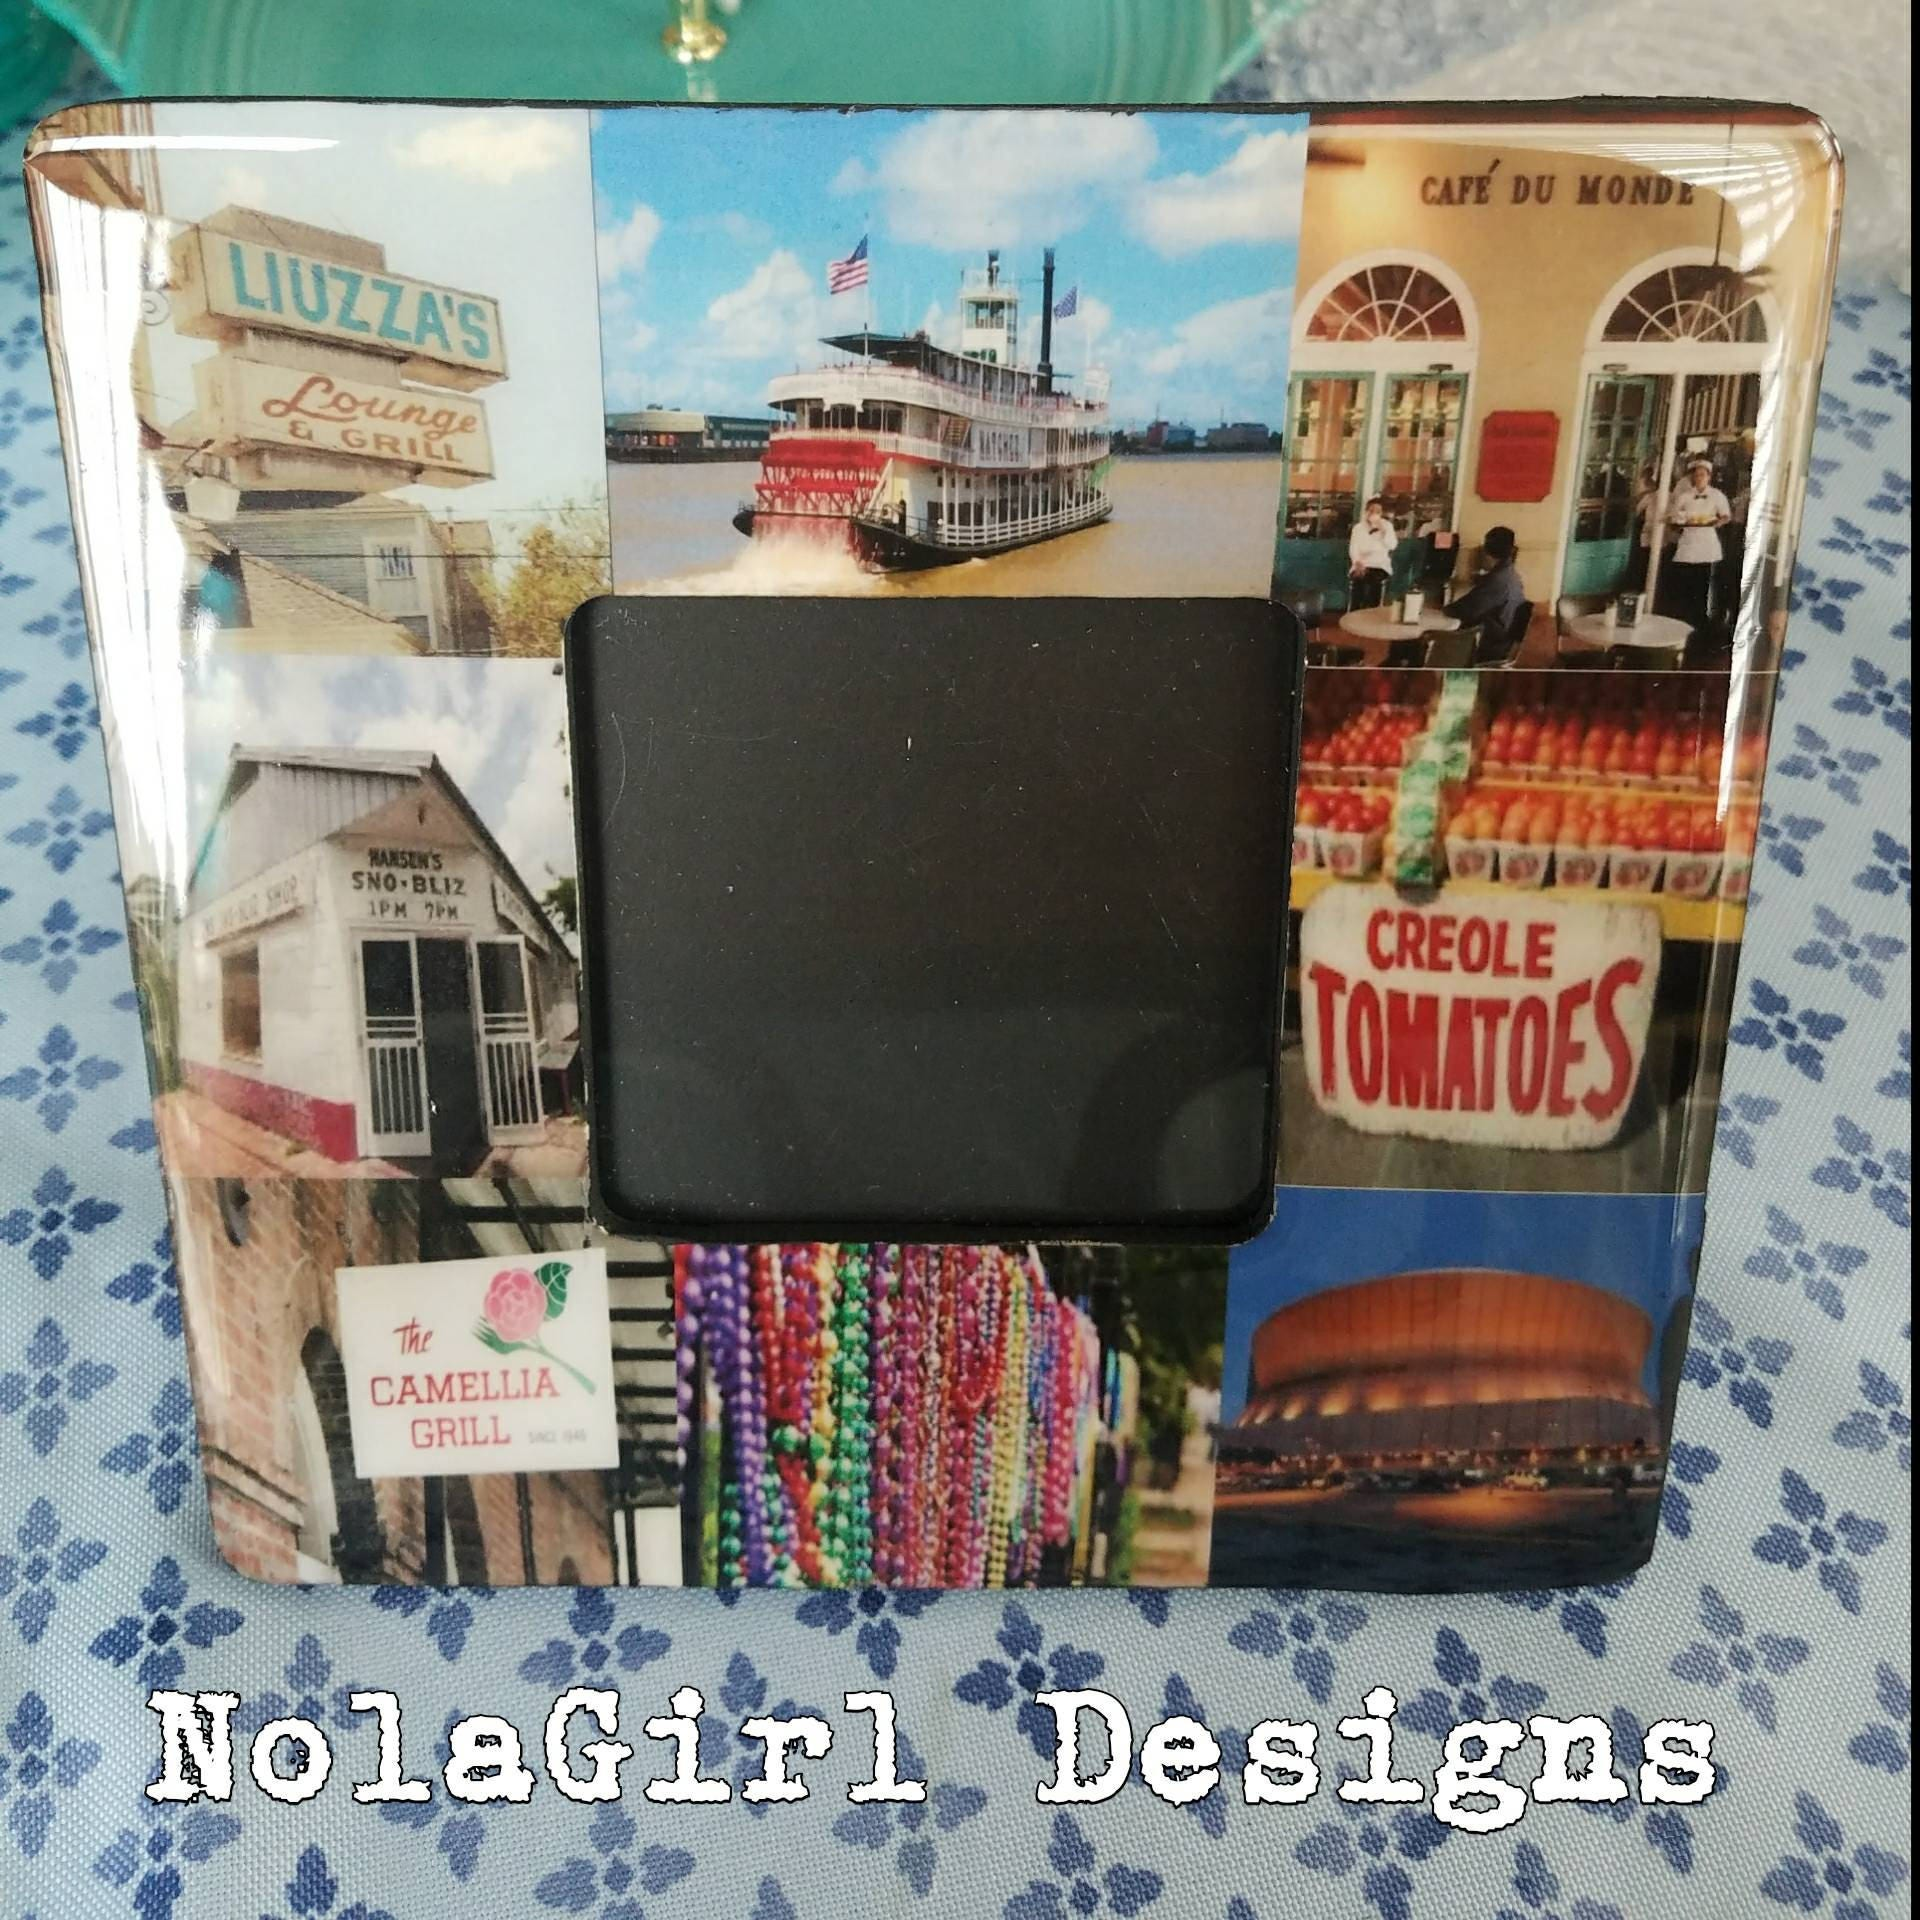 Home Decor New Orleans: New Orleans Frame, Custom Design Frames, Home Decor